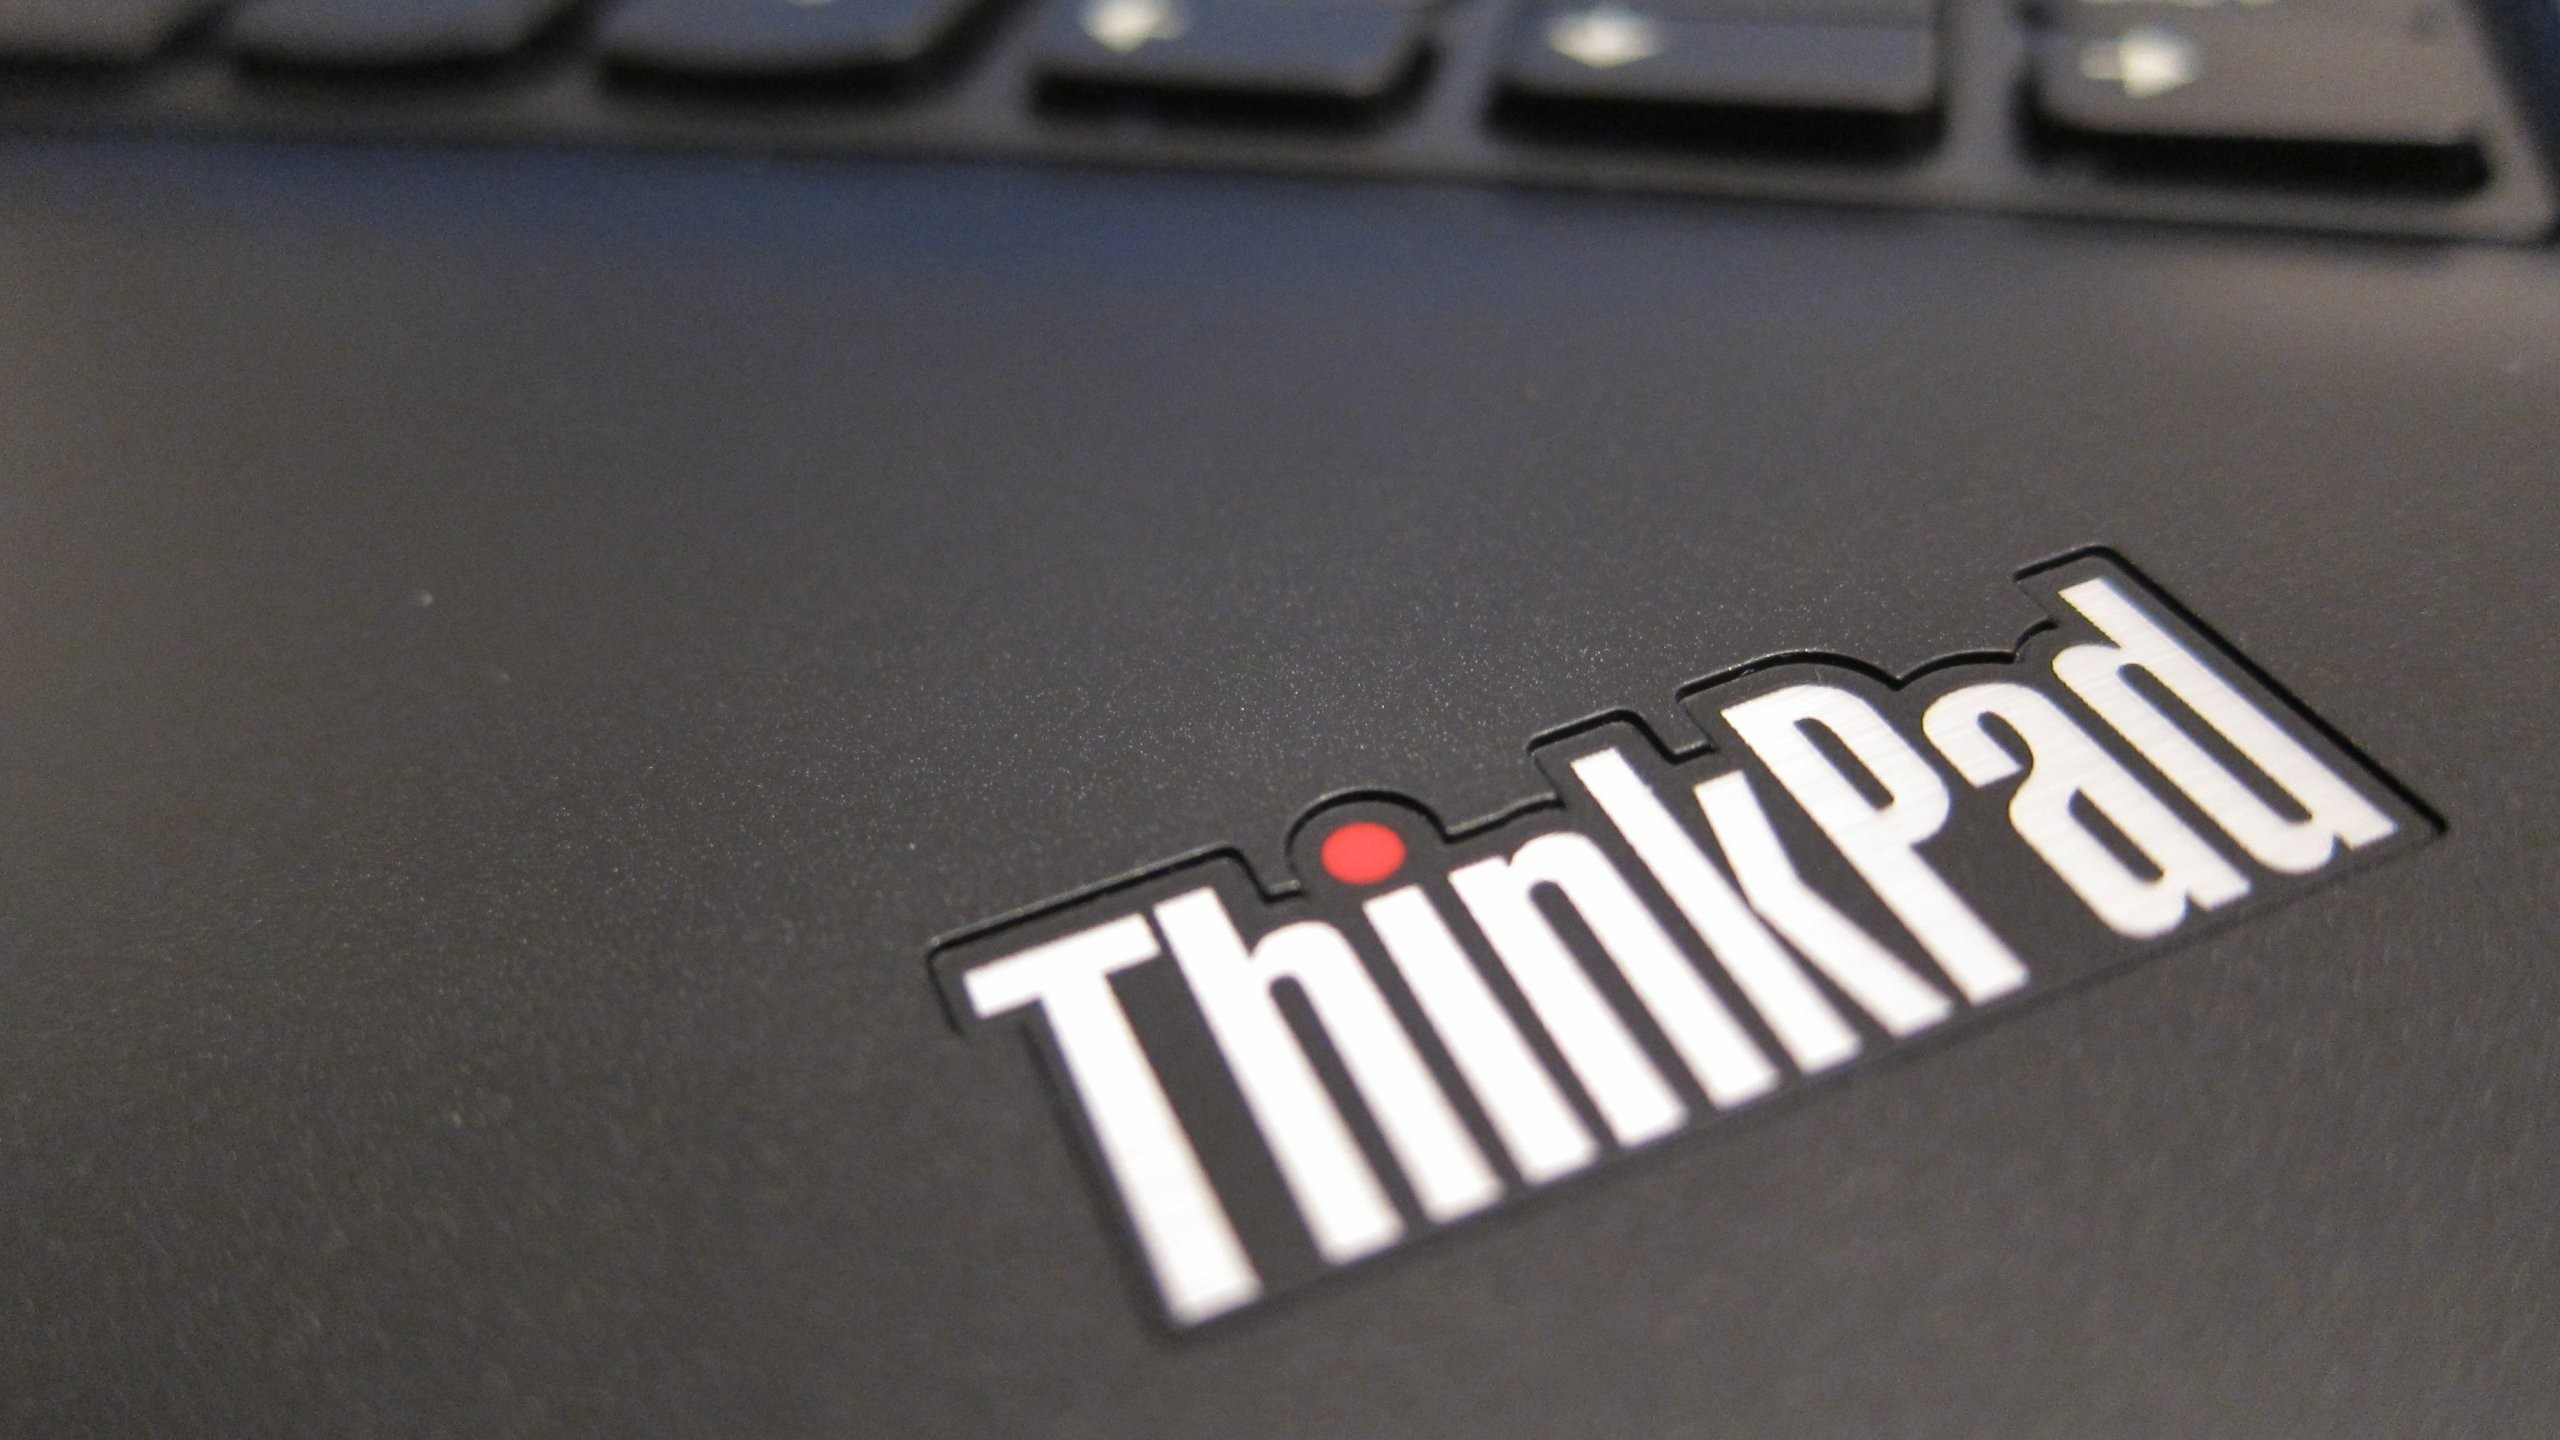 Thinkpad wallpaper hd 75 images 1920x1200 bibmb thinkpad bwallpapersb publicscrutiny Image collections